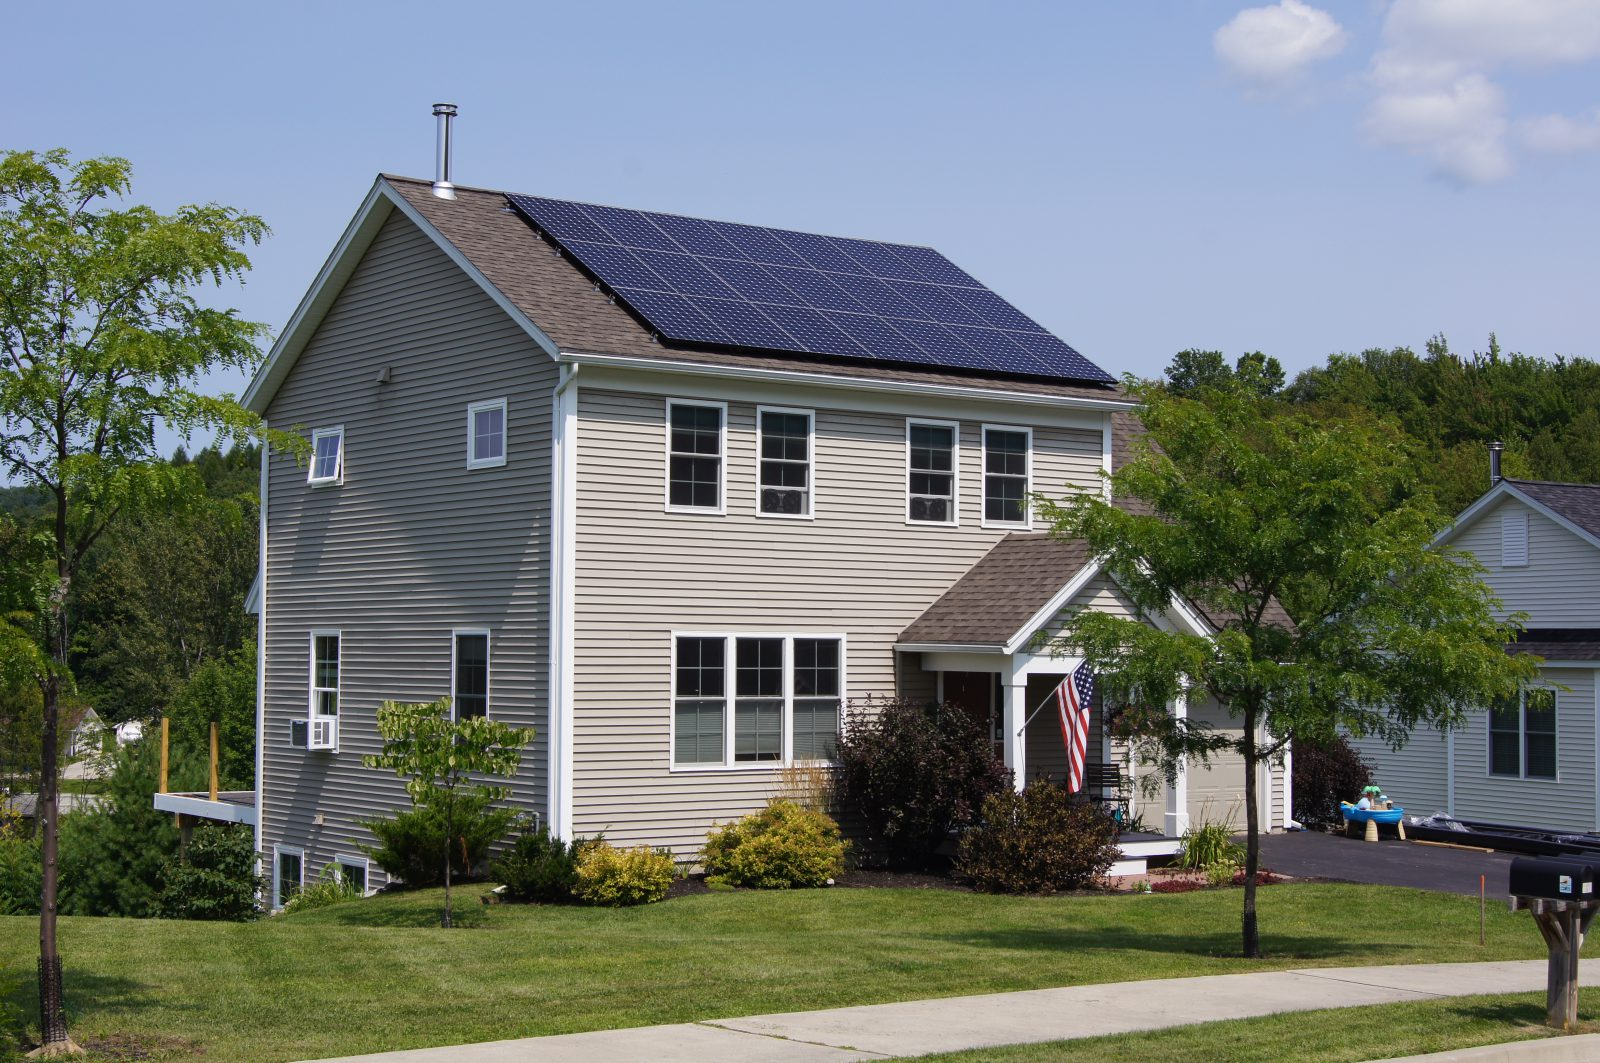 Hinesburg, Vermont Resident Produces Clean Energy with Rooftop Solar